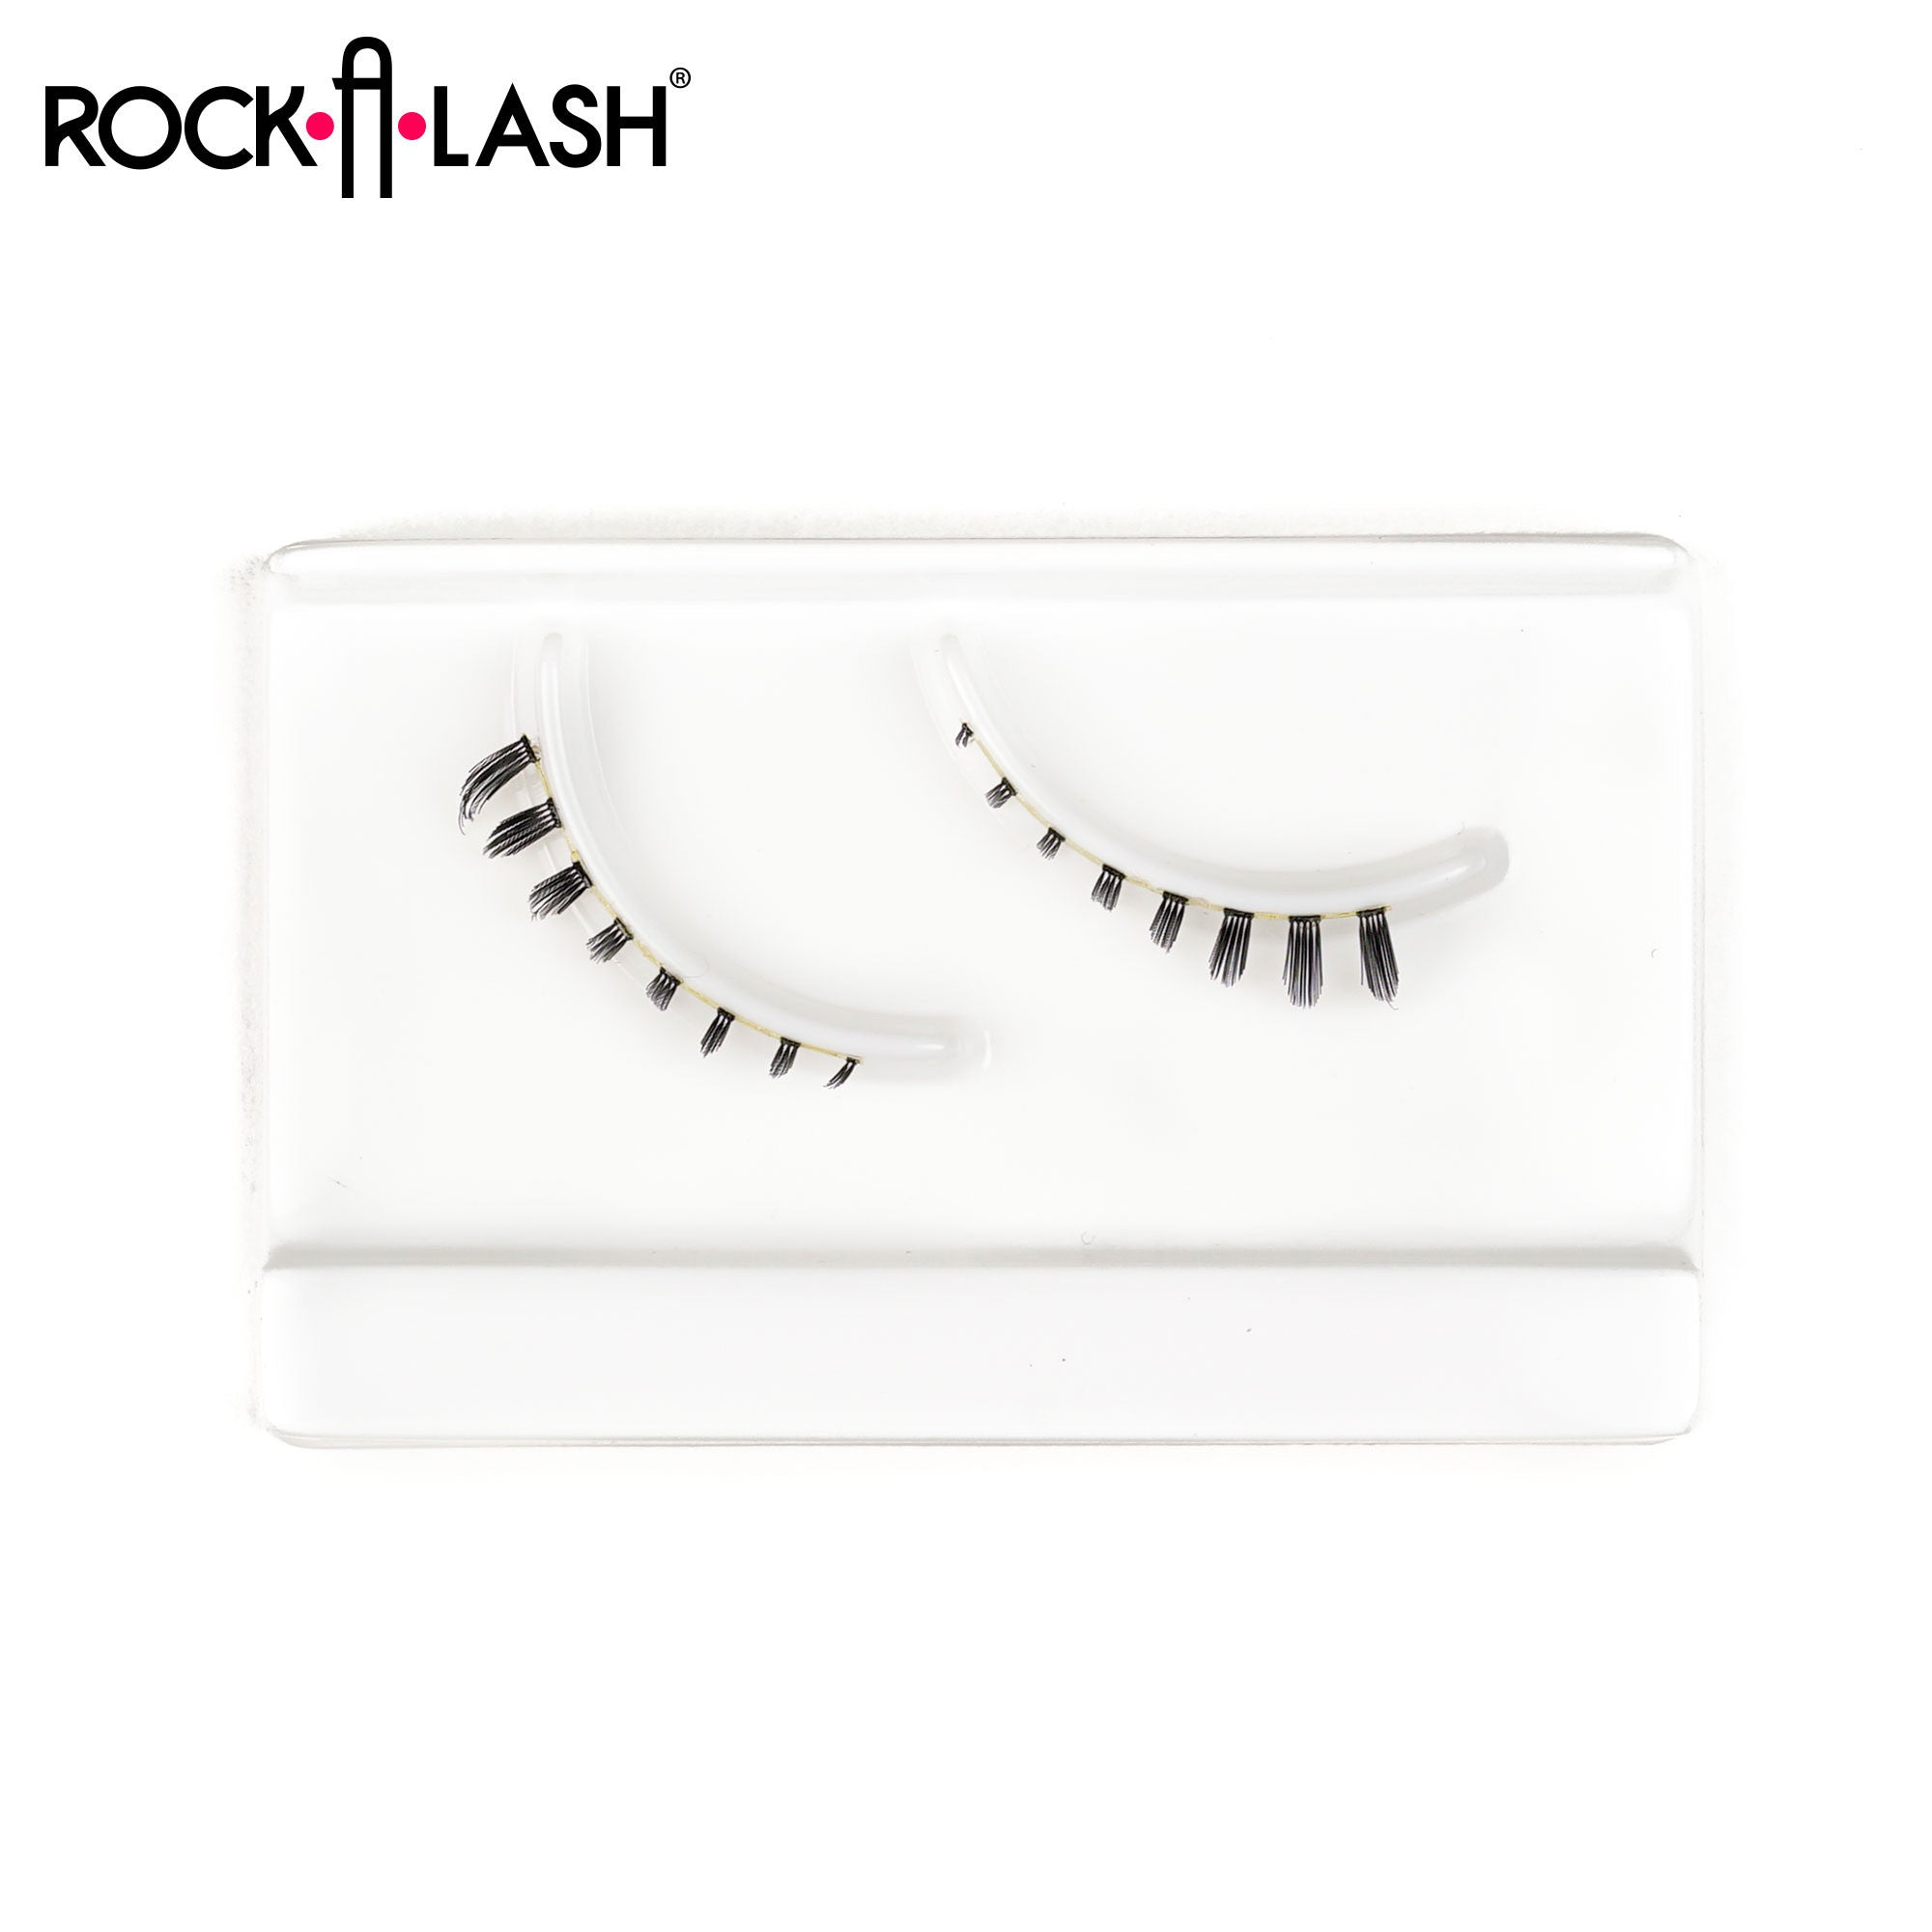 Rock-A-Lash ® <br> #07 - Underlash A™ - 1 Pair